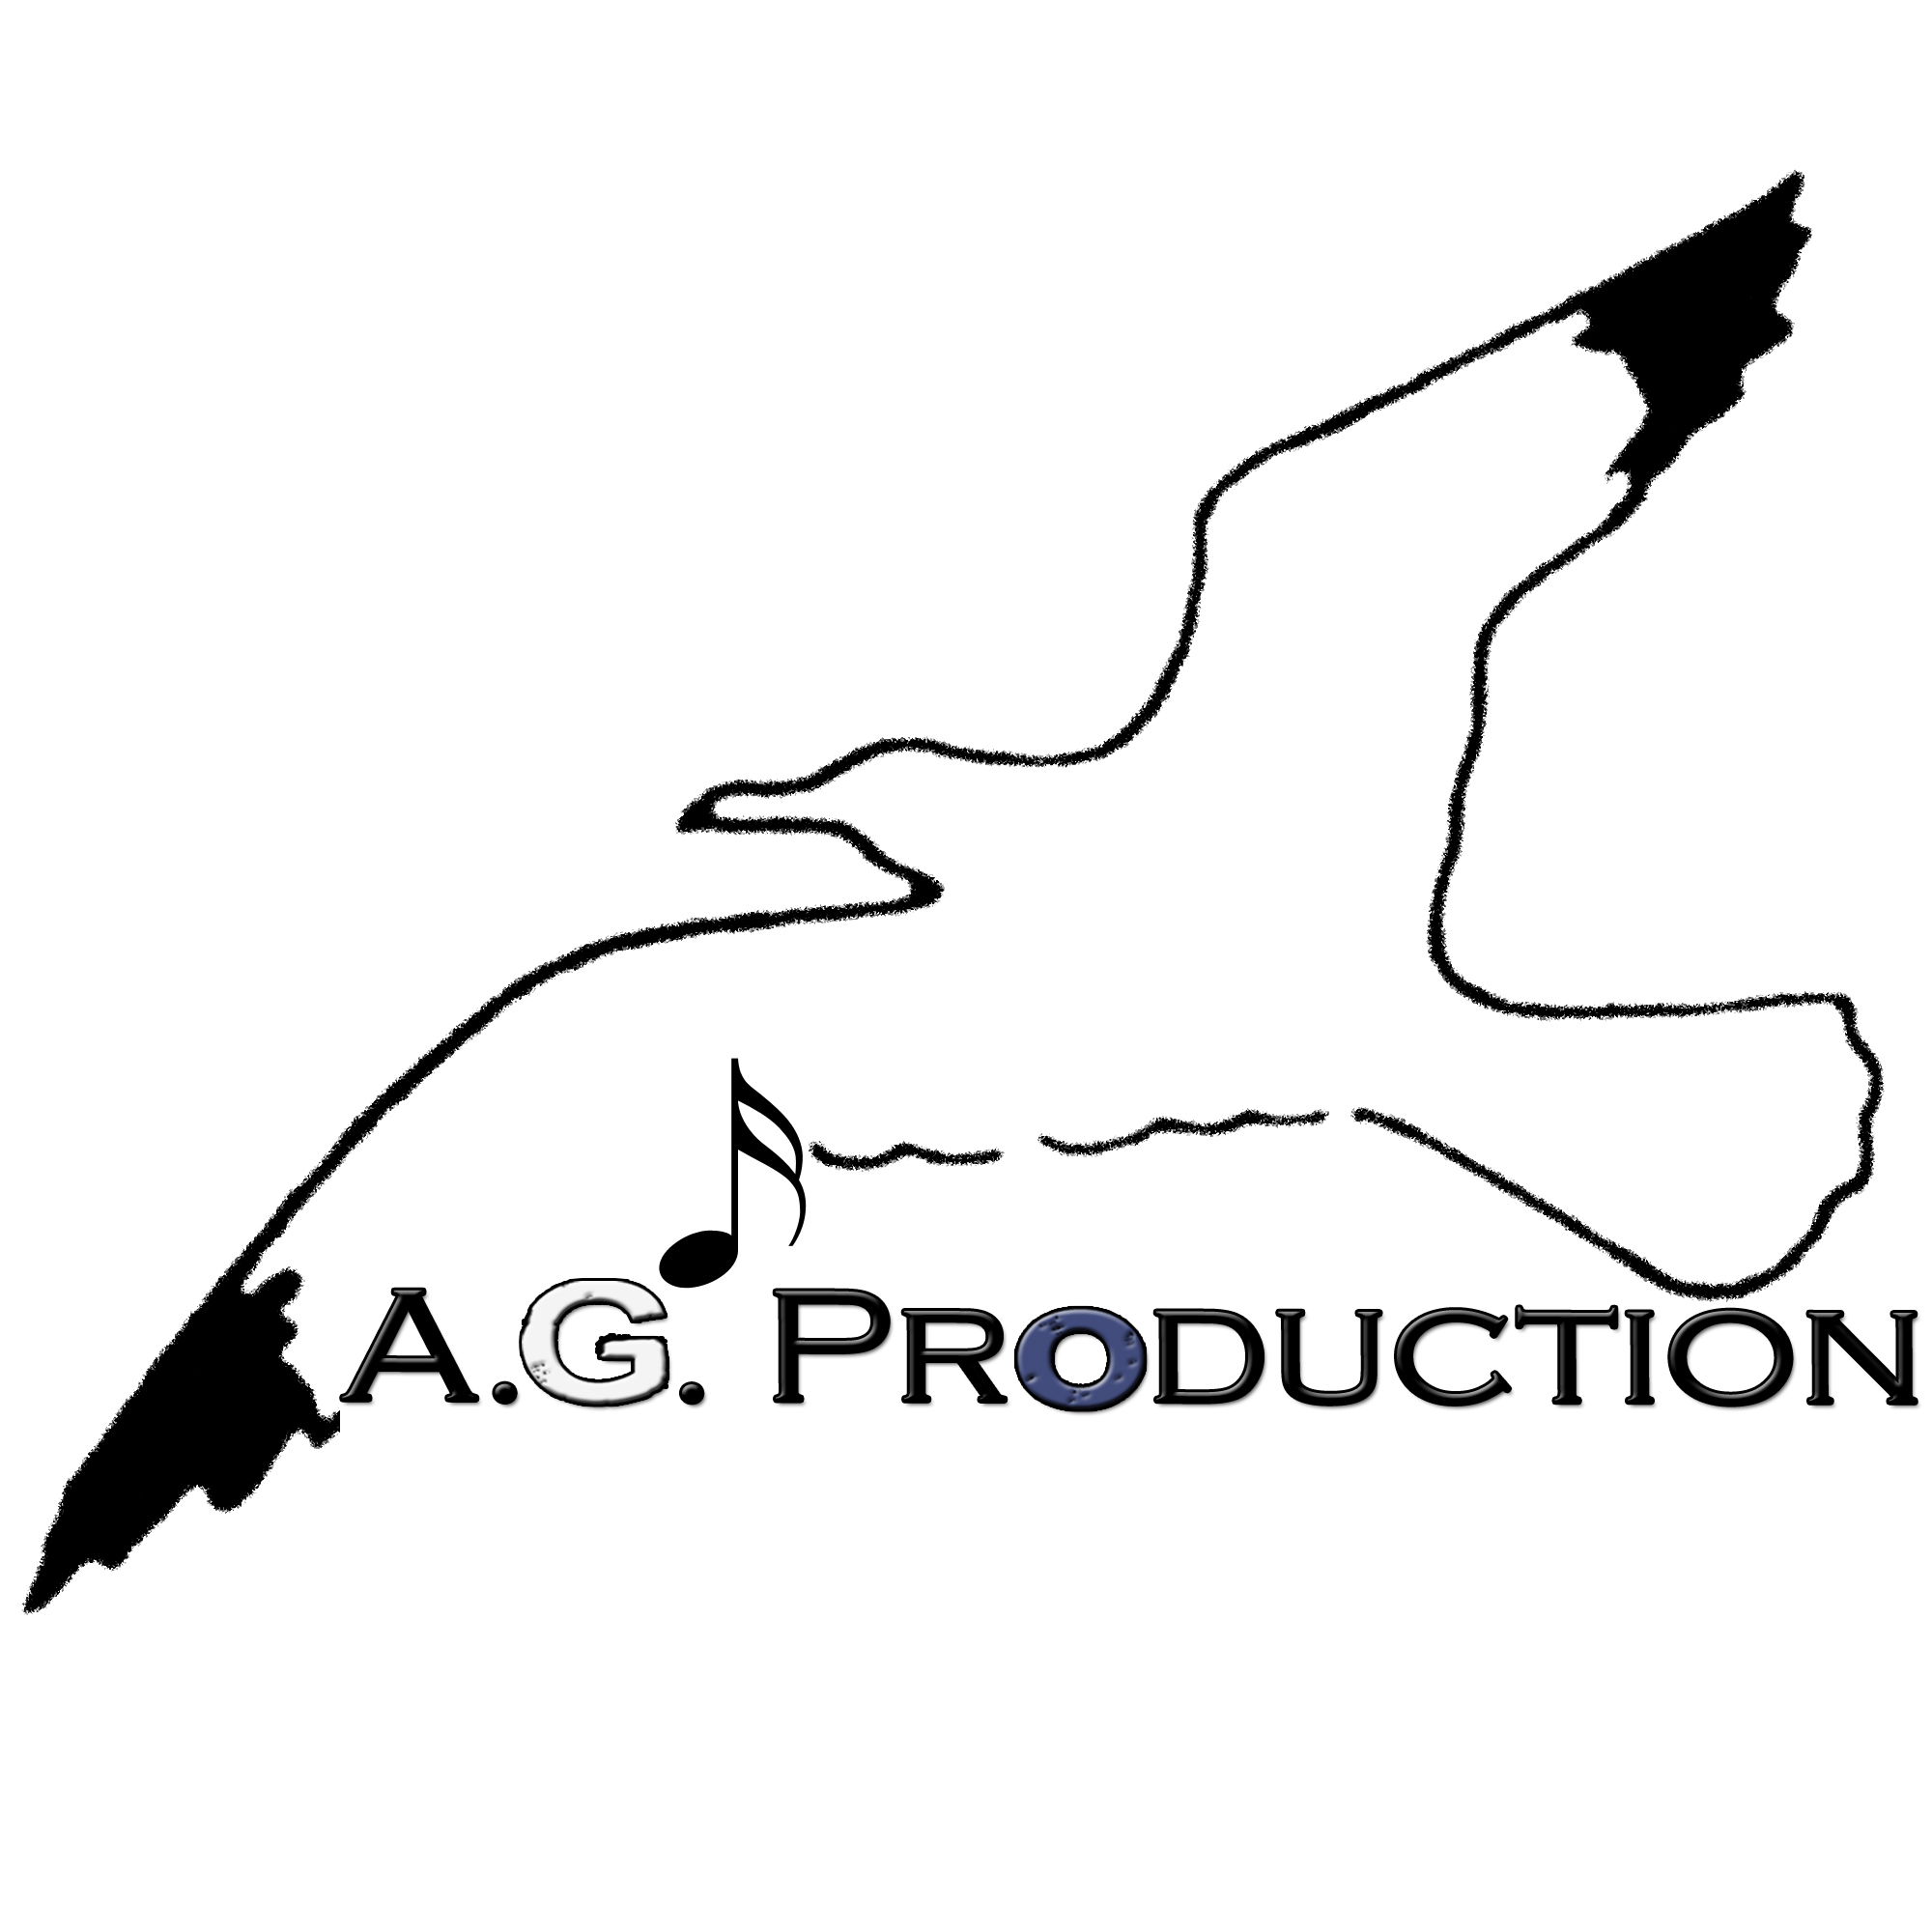 A.G. Production